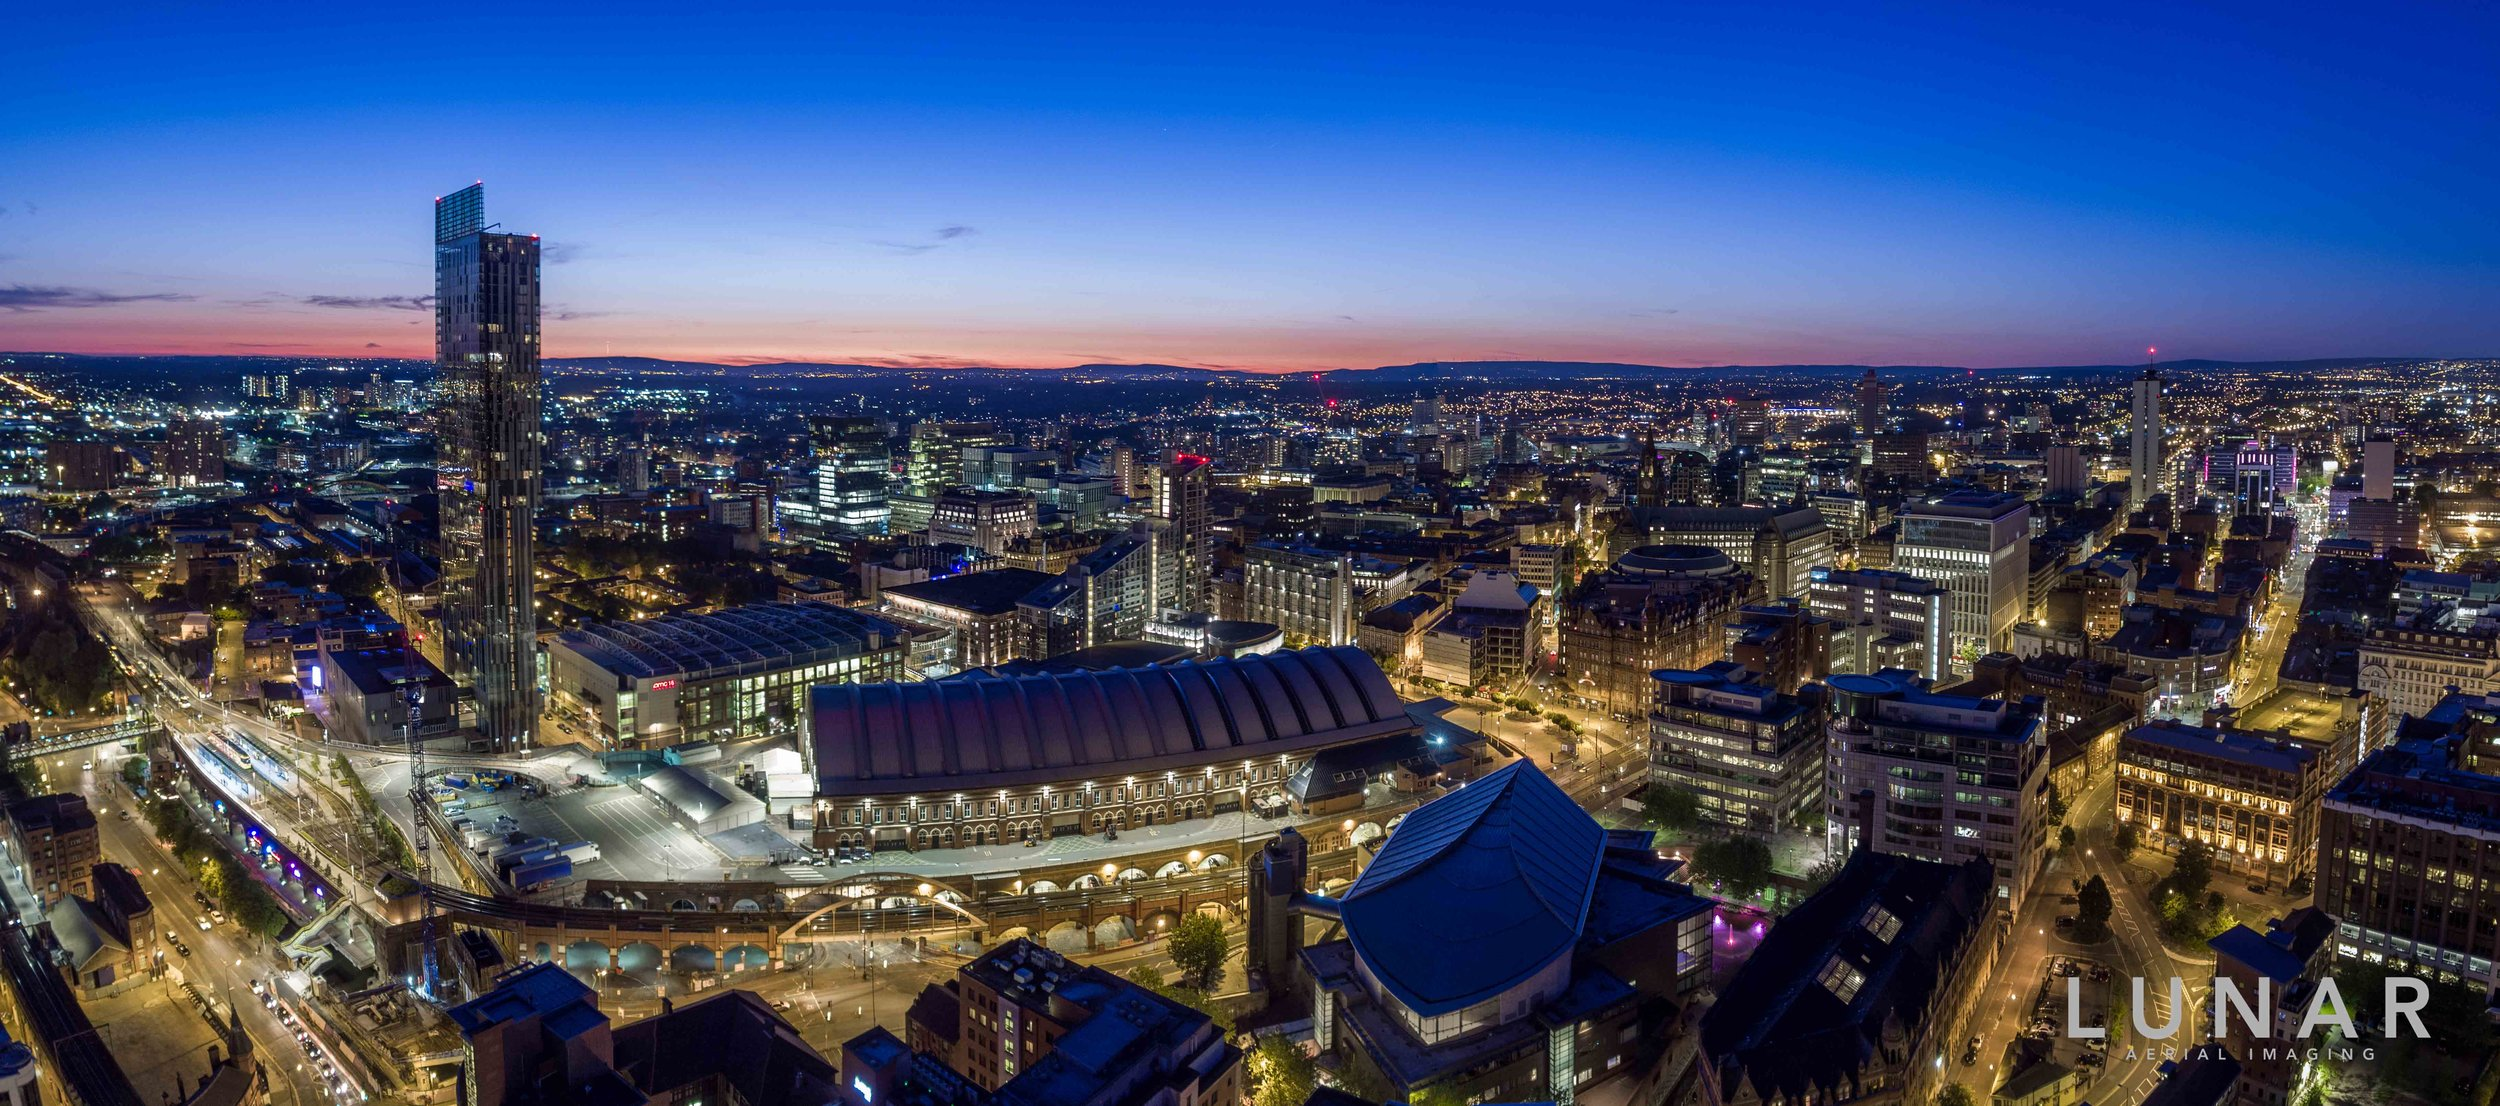 Manchester drone aerial photography at dusk beetham tower, bridgewater hall, manchester central, sunset.jpg